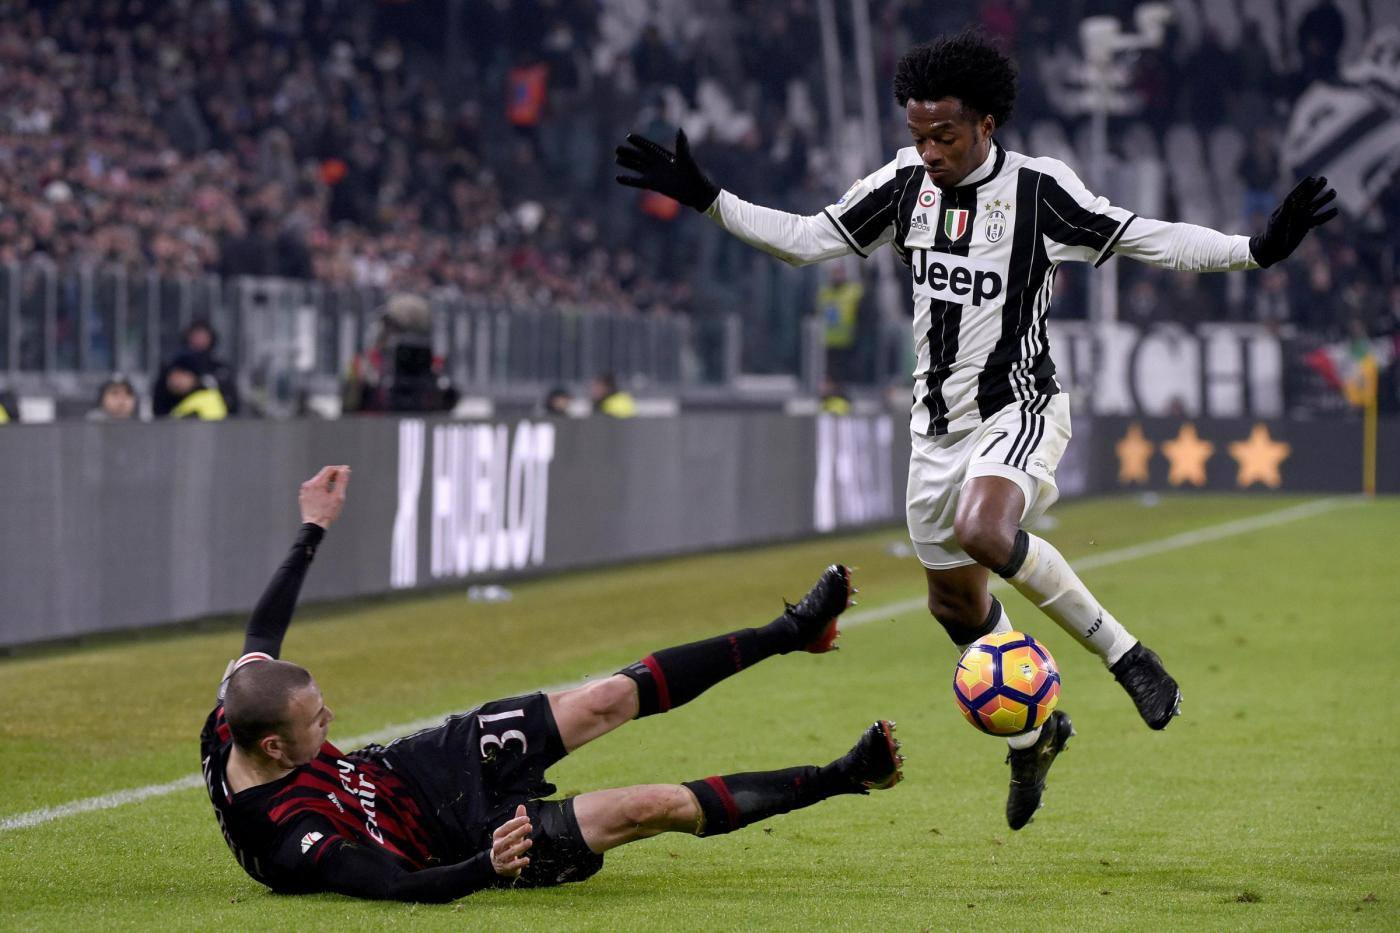 Juventus-Milan: dove vederla in TV e in streaming su tablet e smartphone